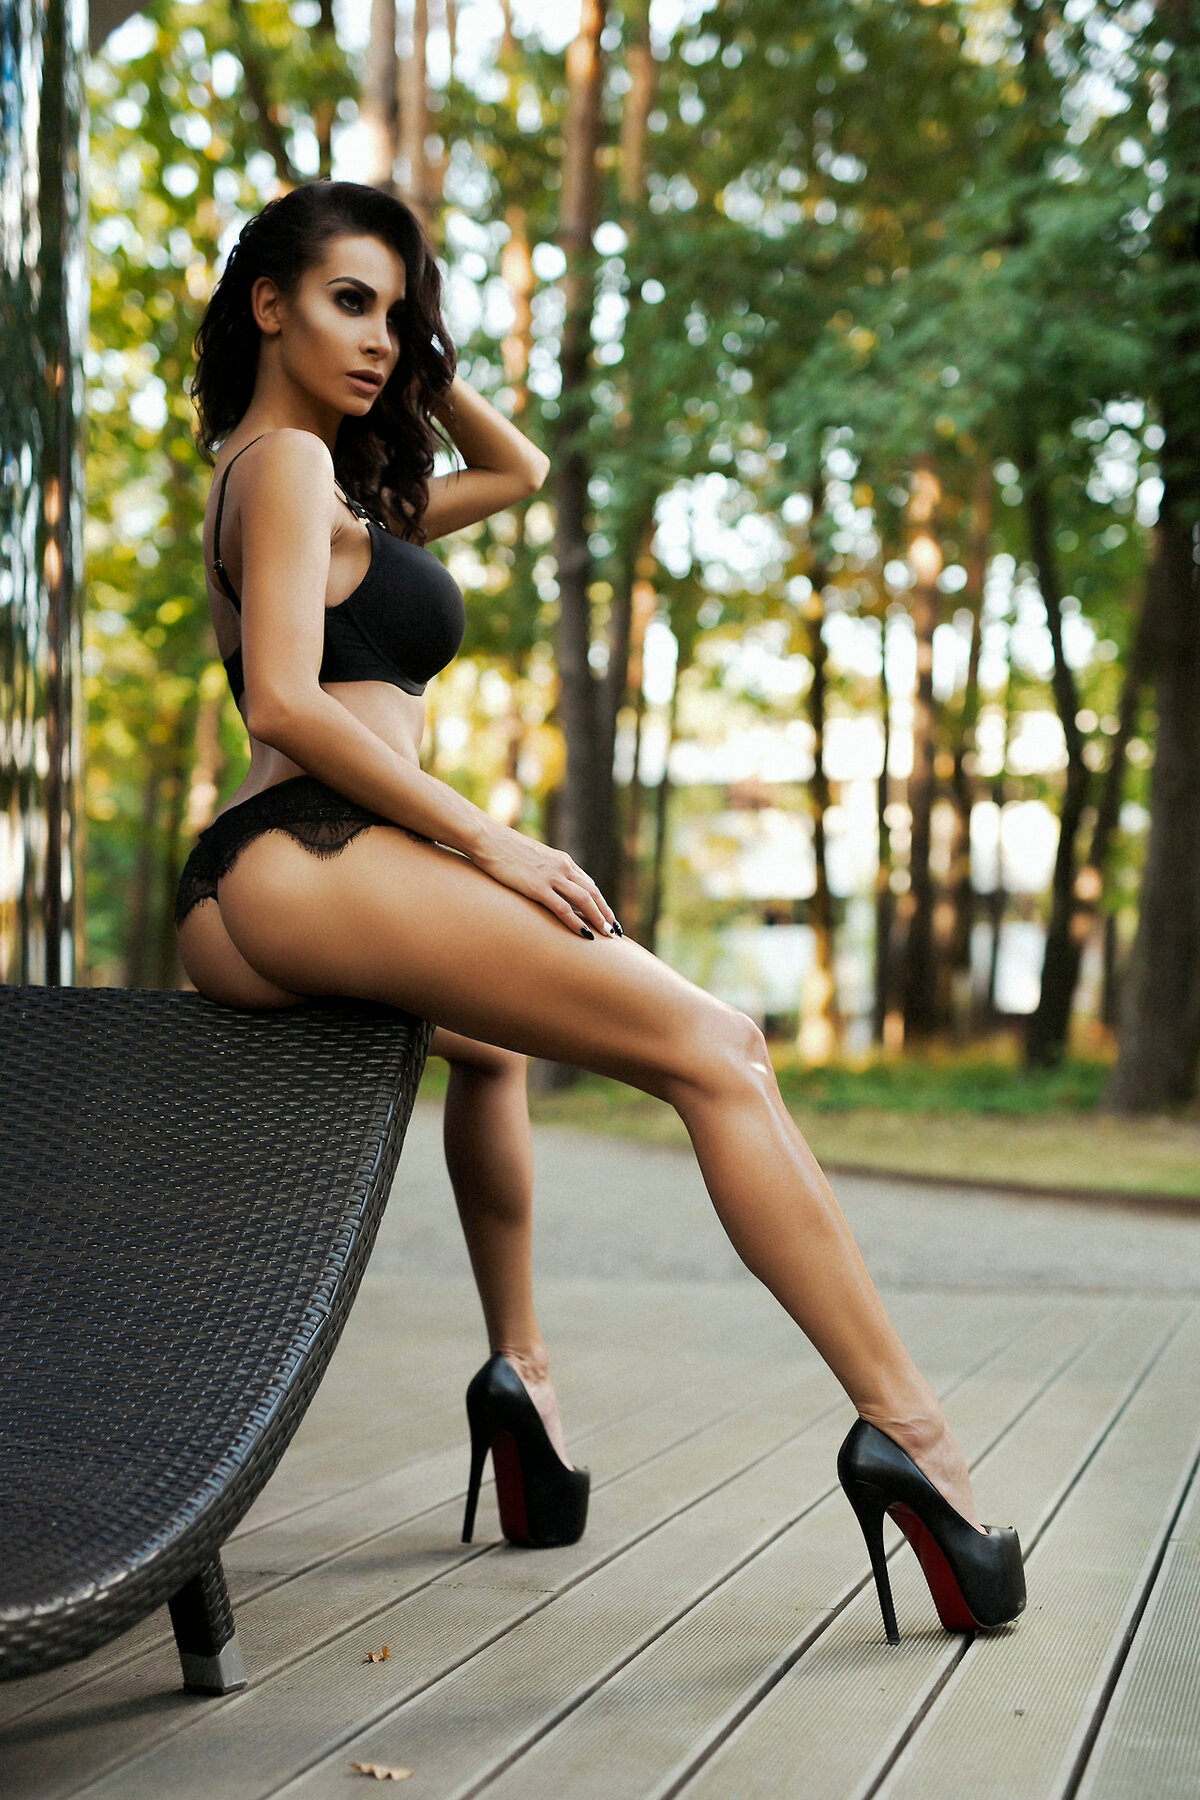 Black females with sexy legs #5